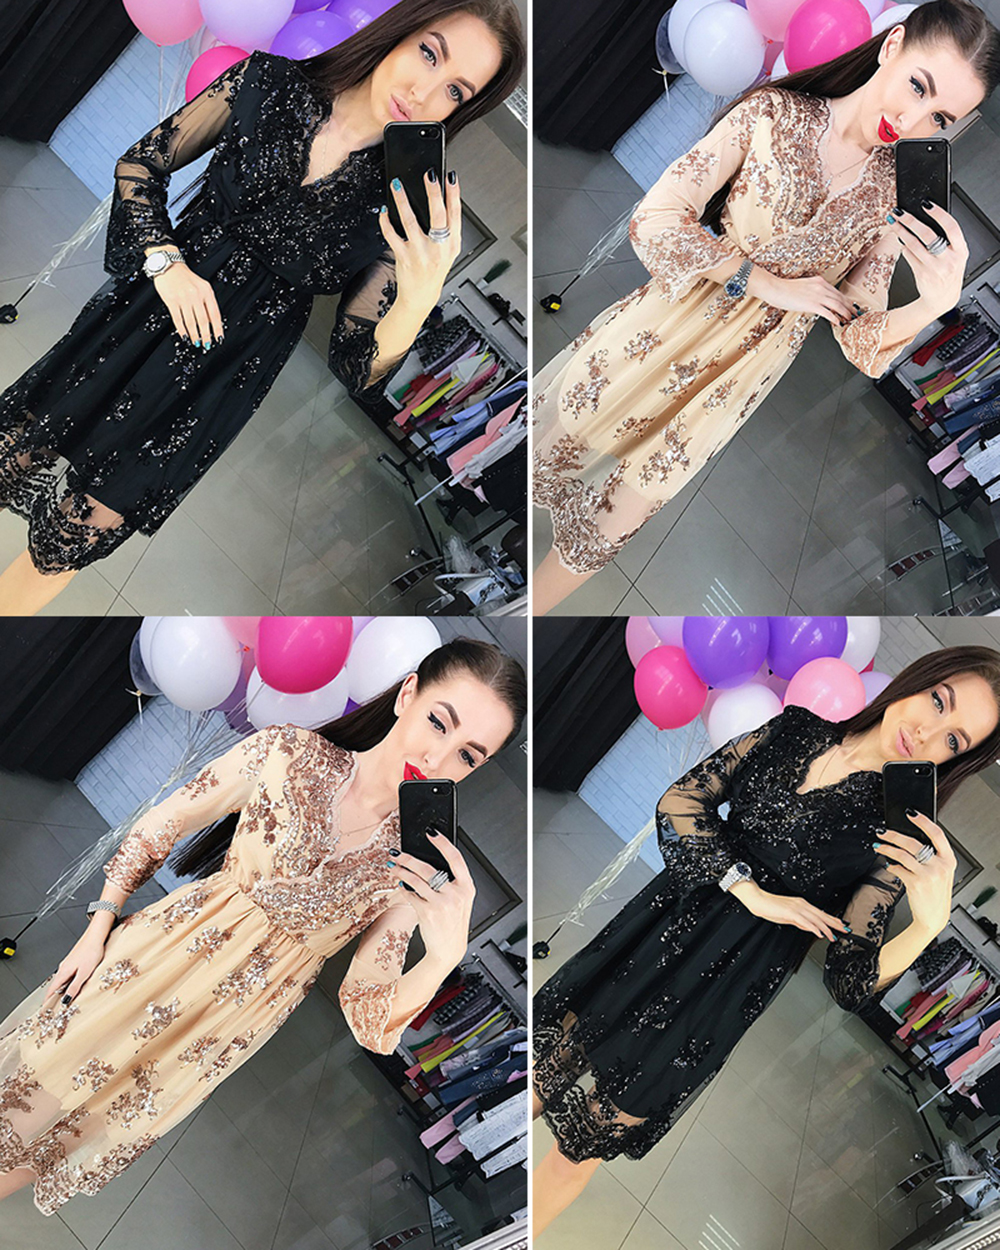 HTB1Lk9WafjM8KJjSZFNq6zQjFXaB - FREE SHIPPING Sequins Dress Vestidos Sexy Club V Neck Long Dress JKP344